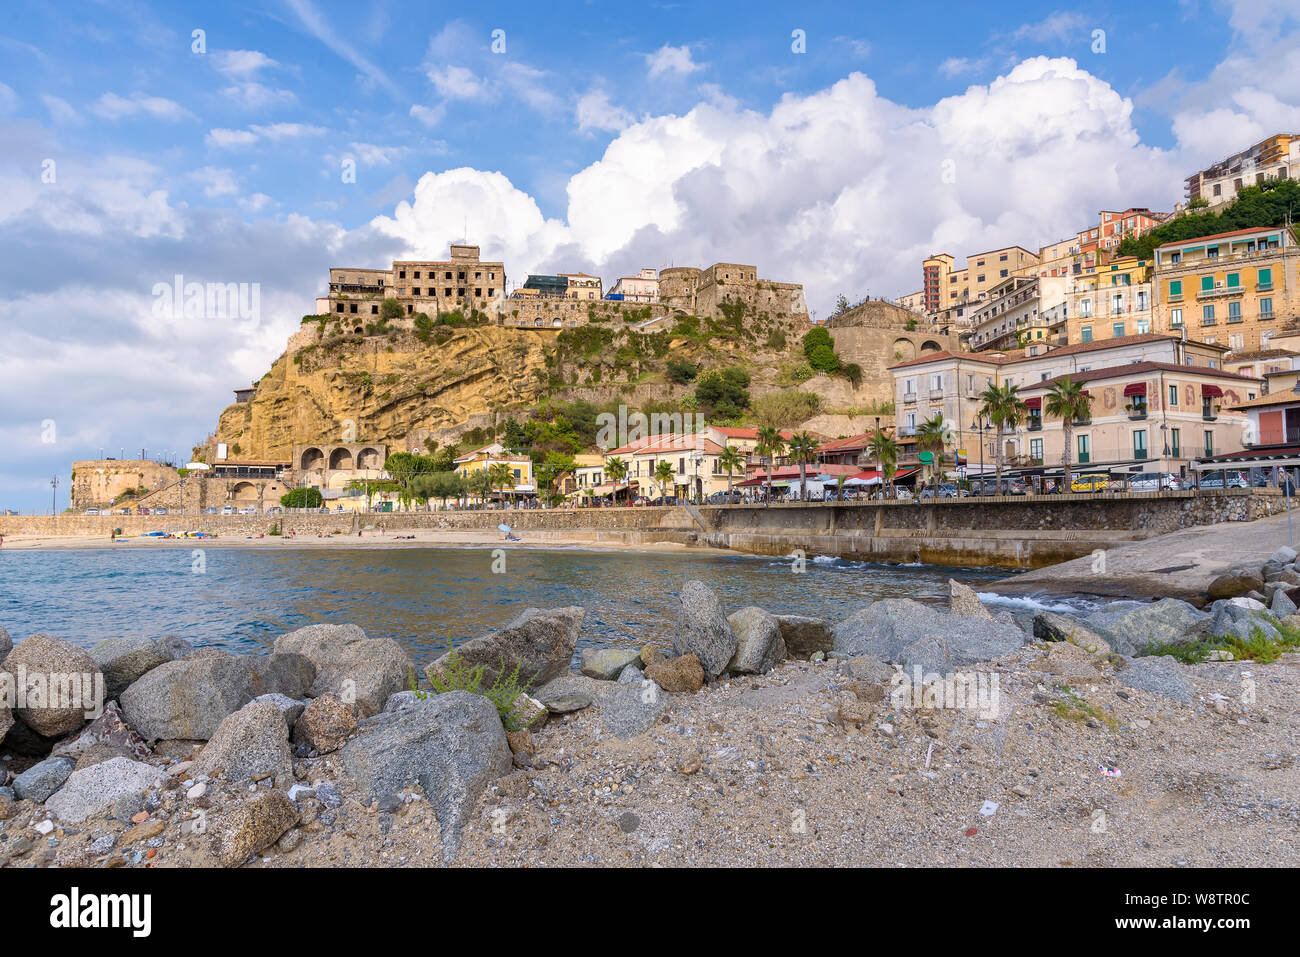 View of sea wharf in Pizzo town in Calabria, southern Italy Stock Photo